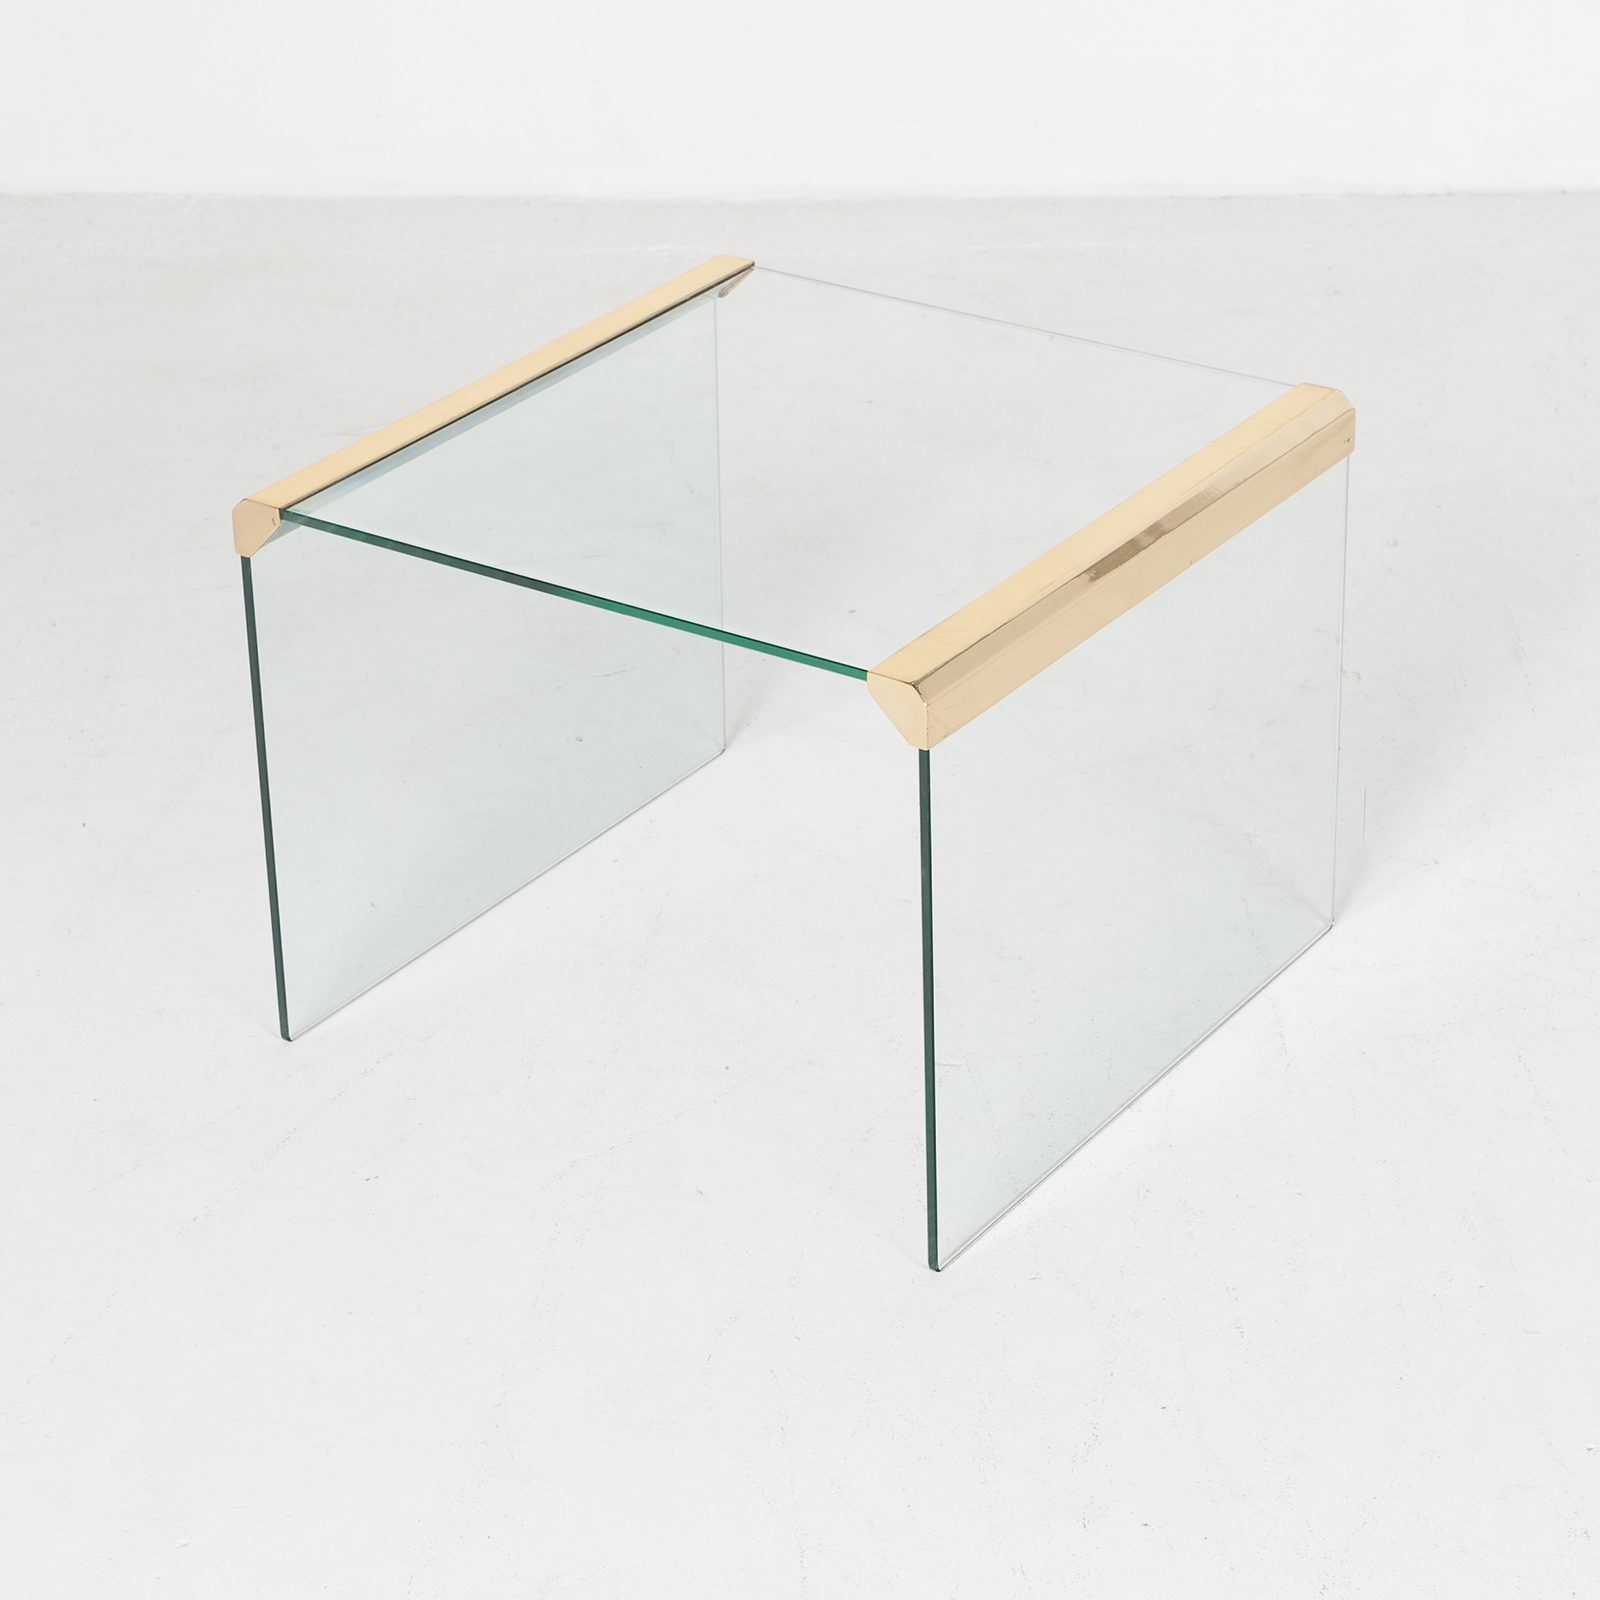 Waterfall Side Table By Pace In Glass And Anodised Brass, 1970s, United States900